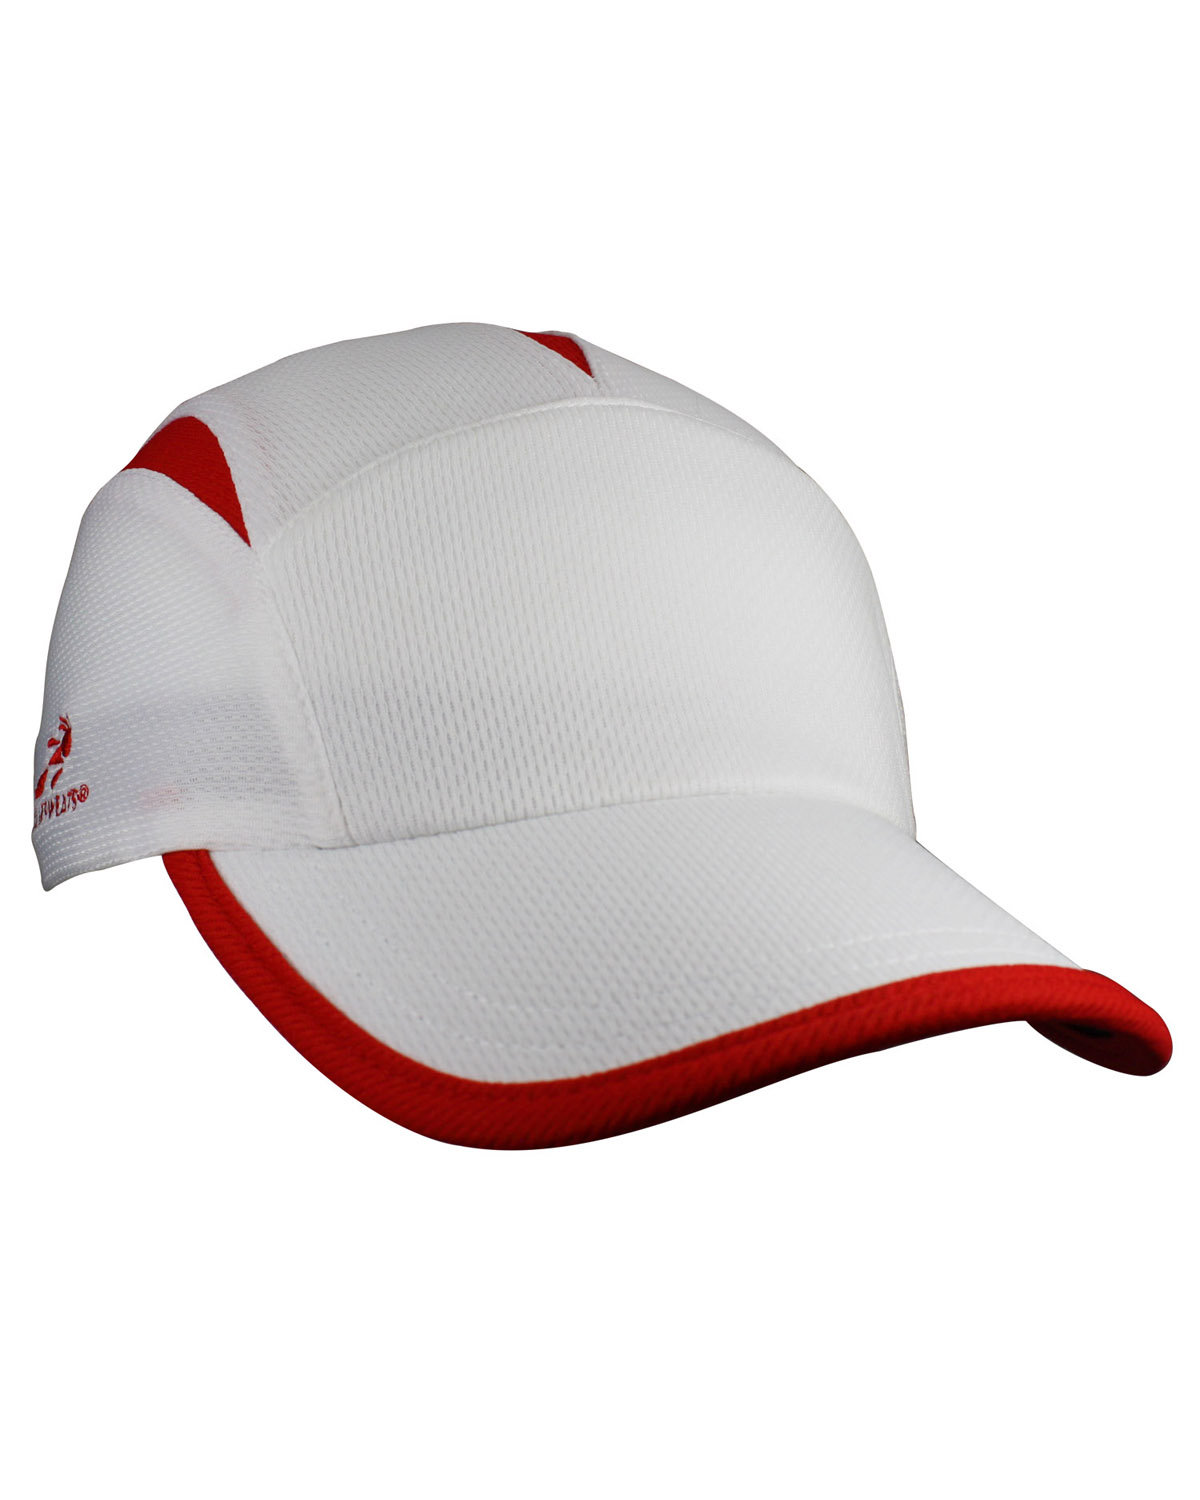 Headsweats Unisex Knit Go Hat WHITE/ RED